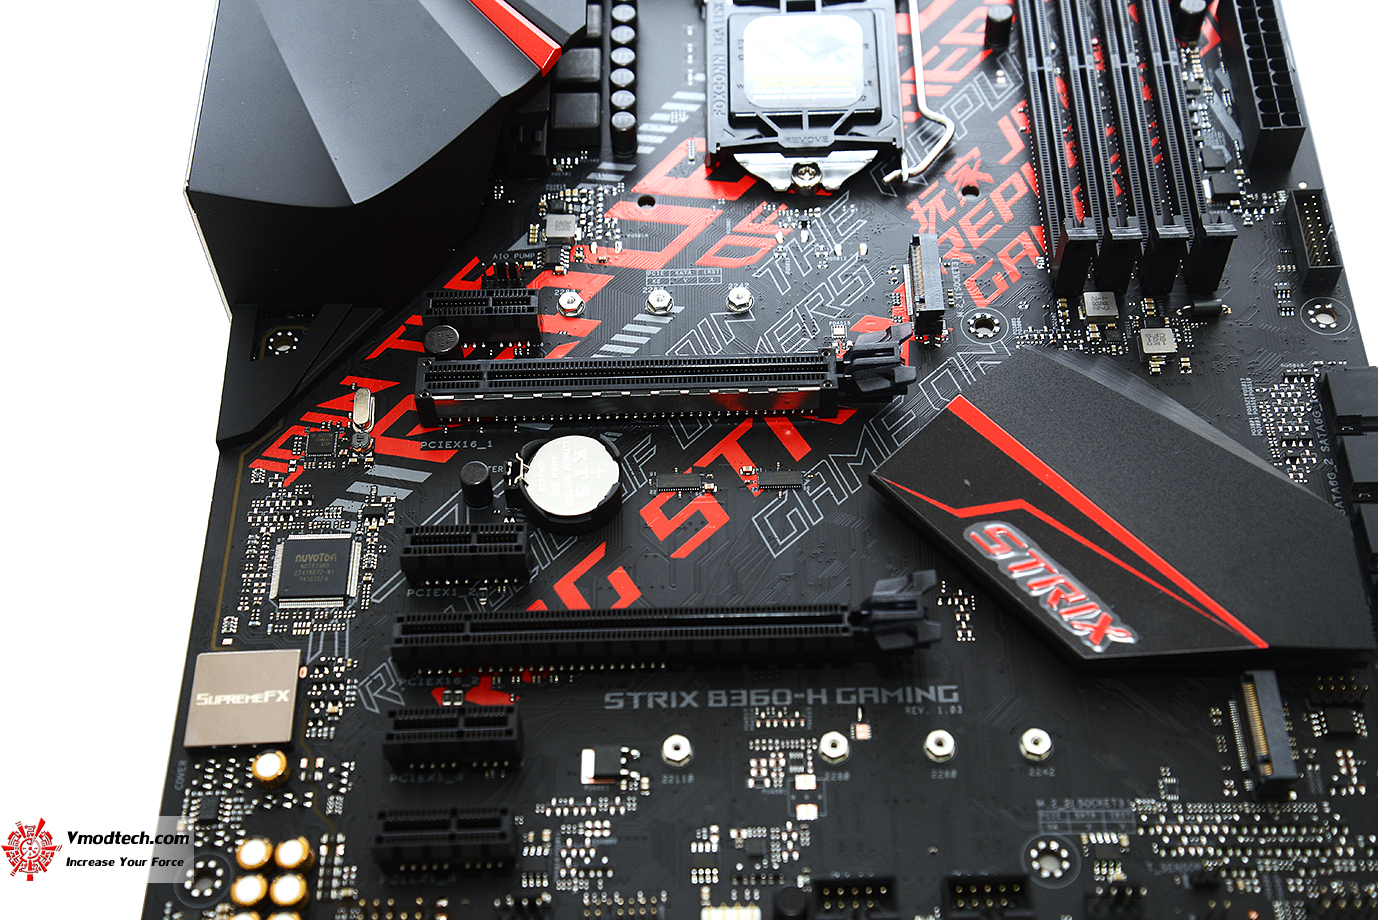 dsc 2069 ASUS ROG STRIX B360 H GAMING REVIEW